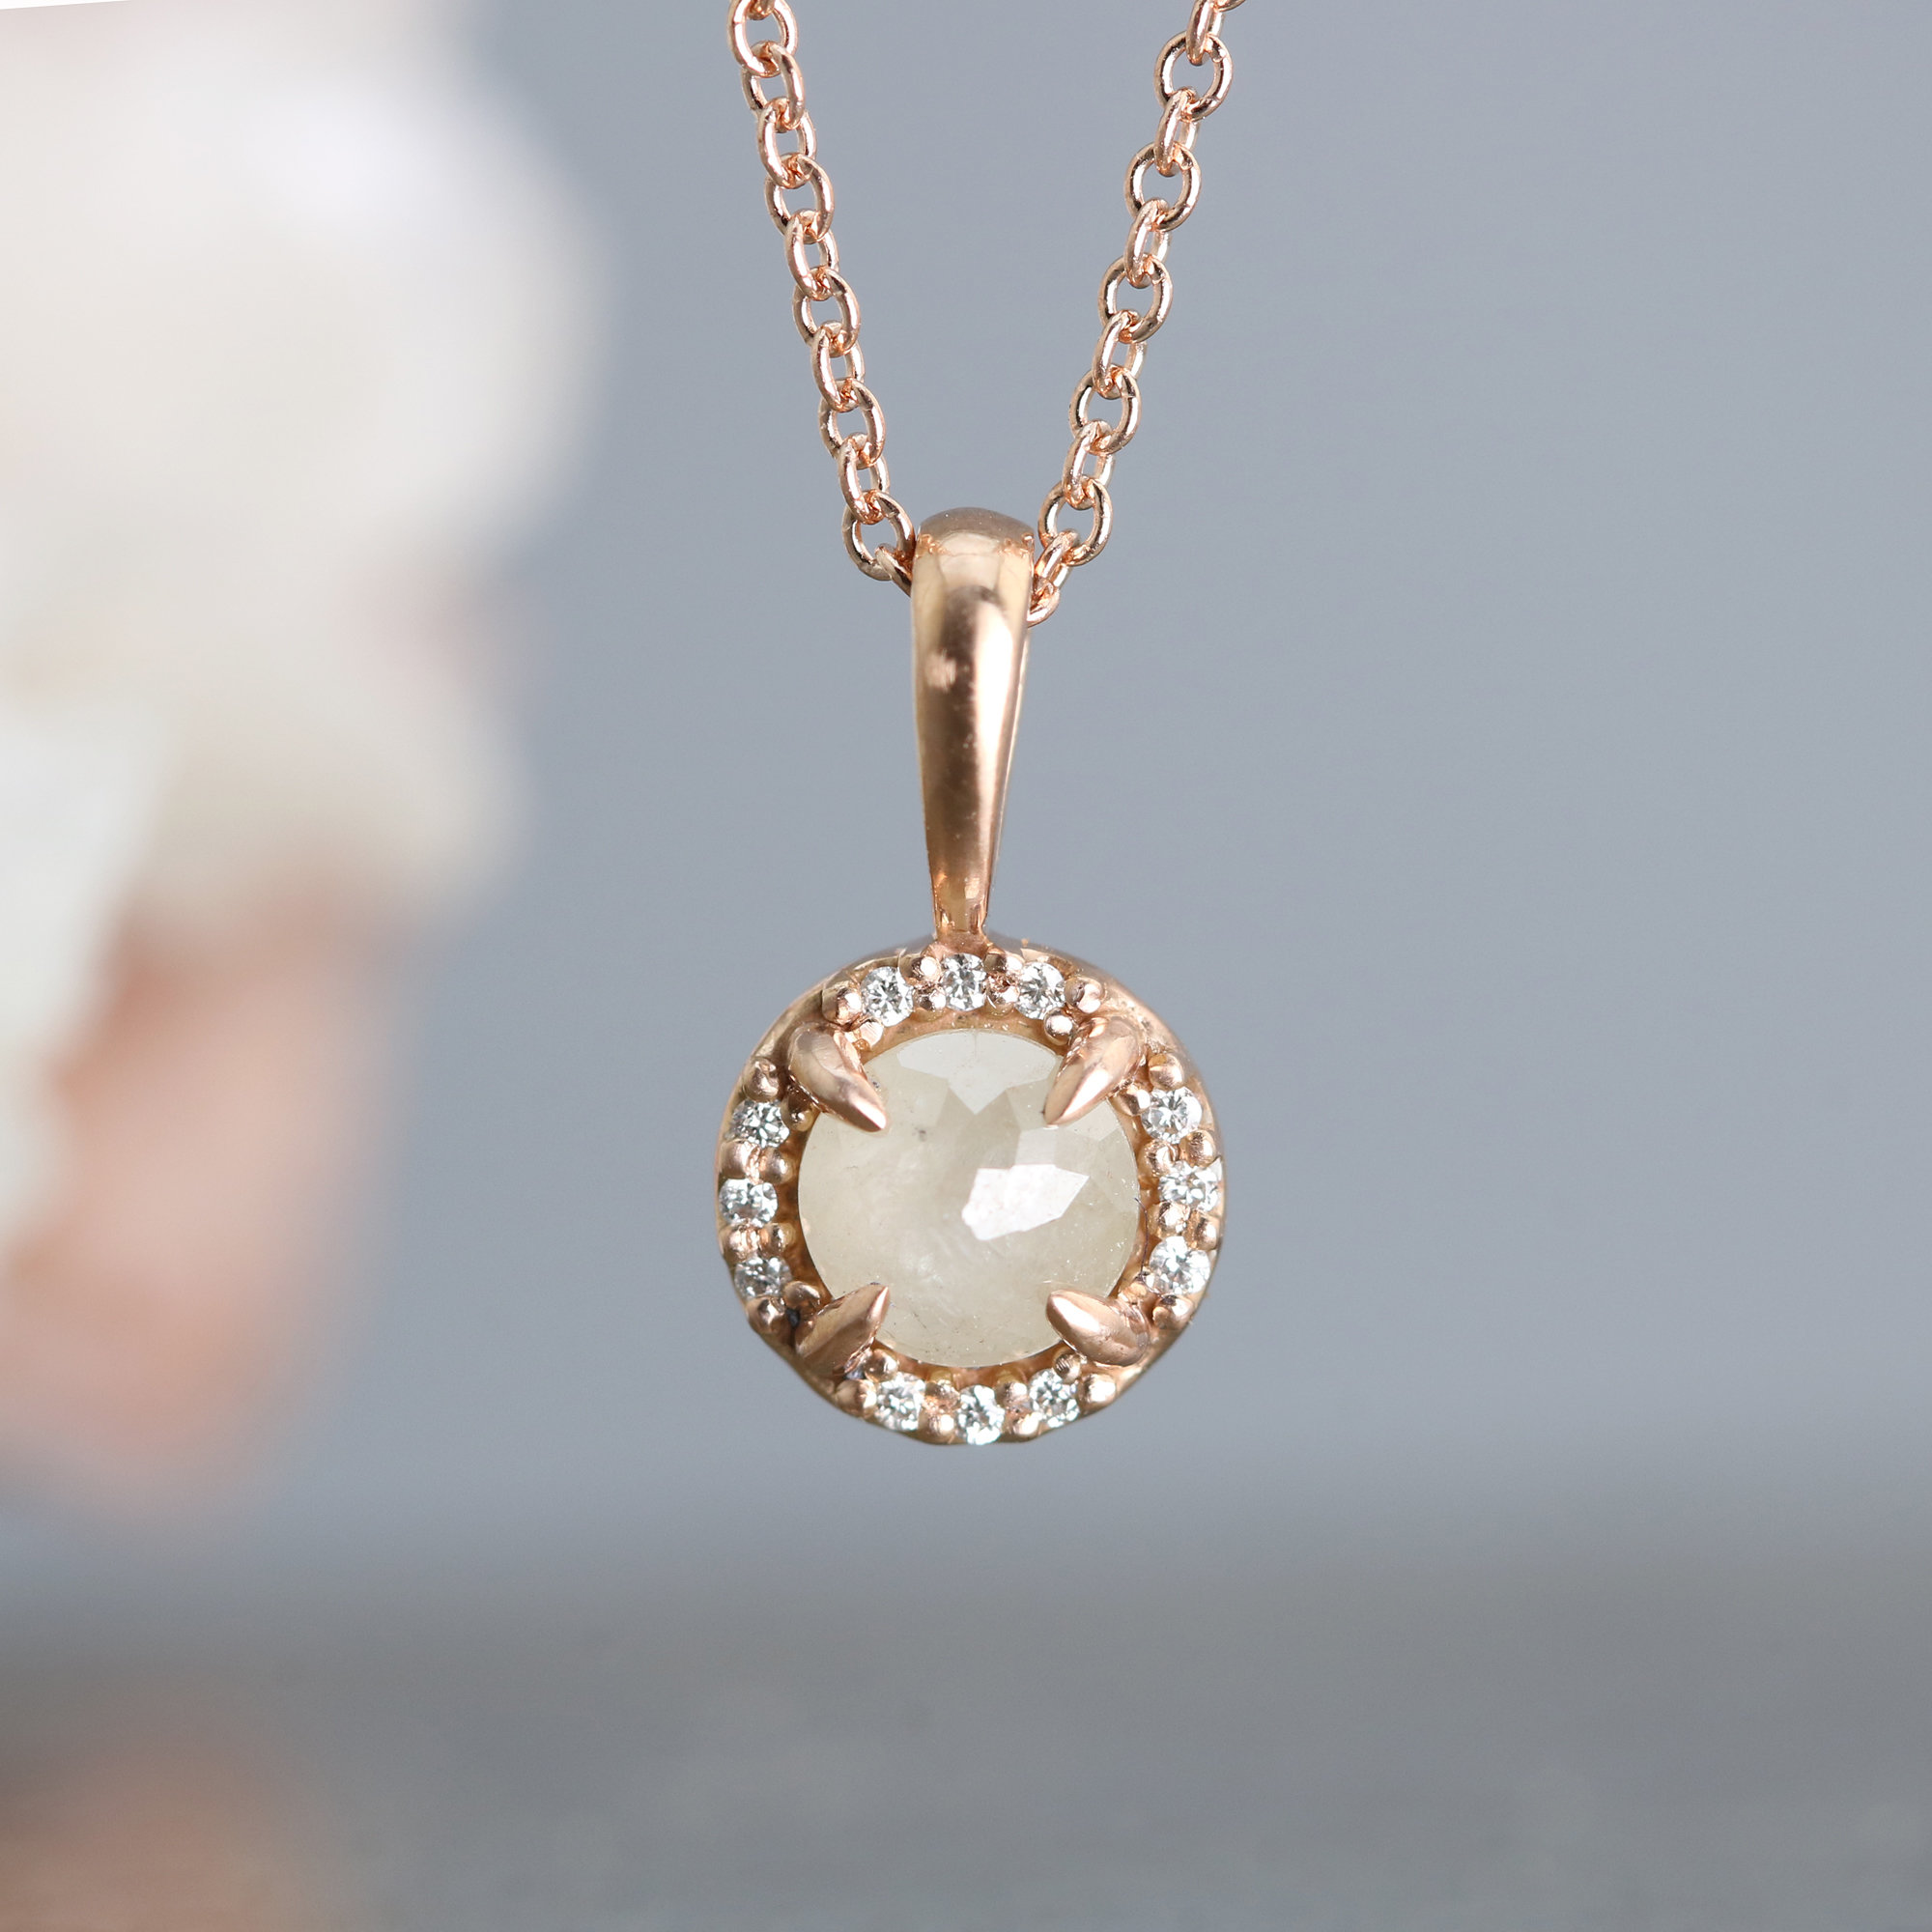 Rose Gold Halo Pendant Necklace By Sarah Hood Gold Stone Necklace Rose Gold Pendant Gold Pendant Stone Pendants